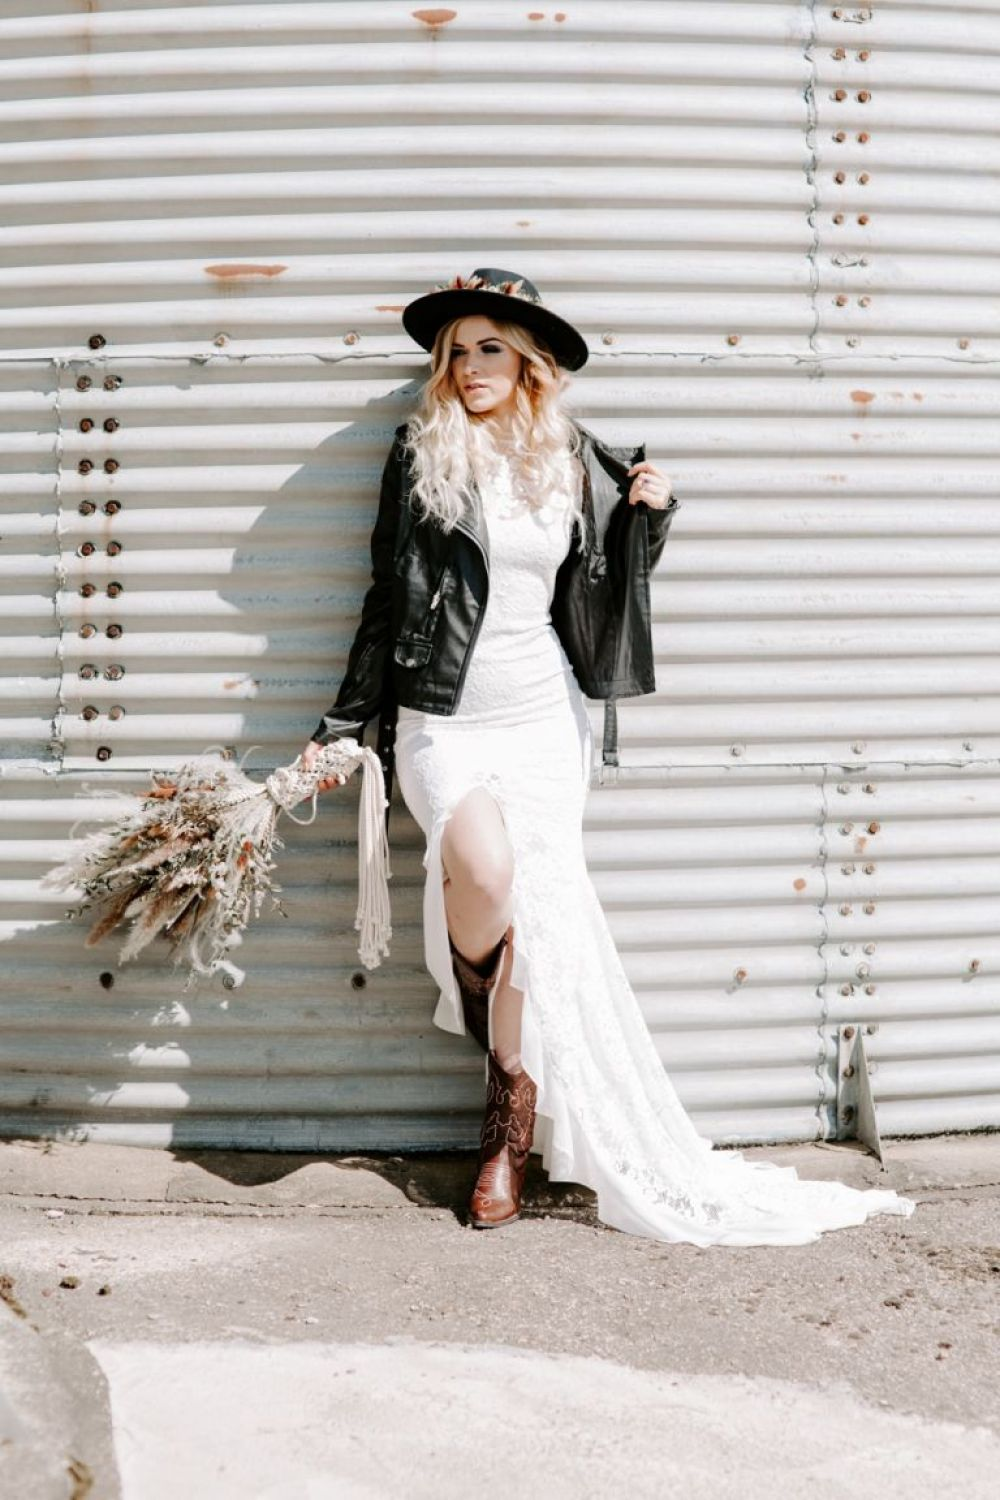 Bride wearing leather jacket and boho hat